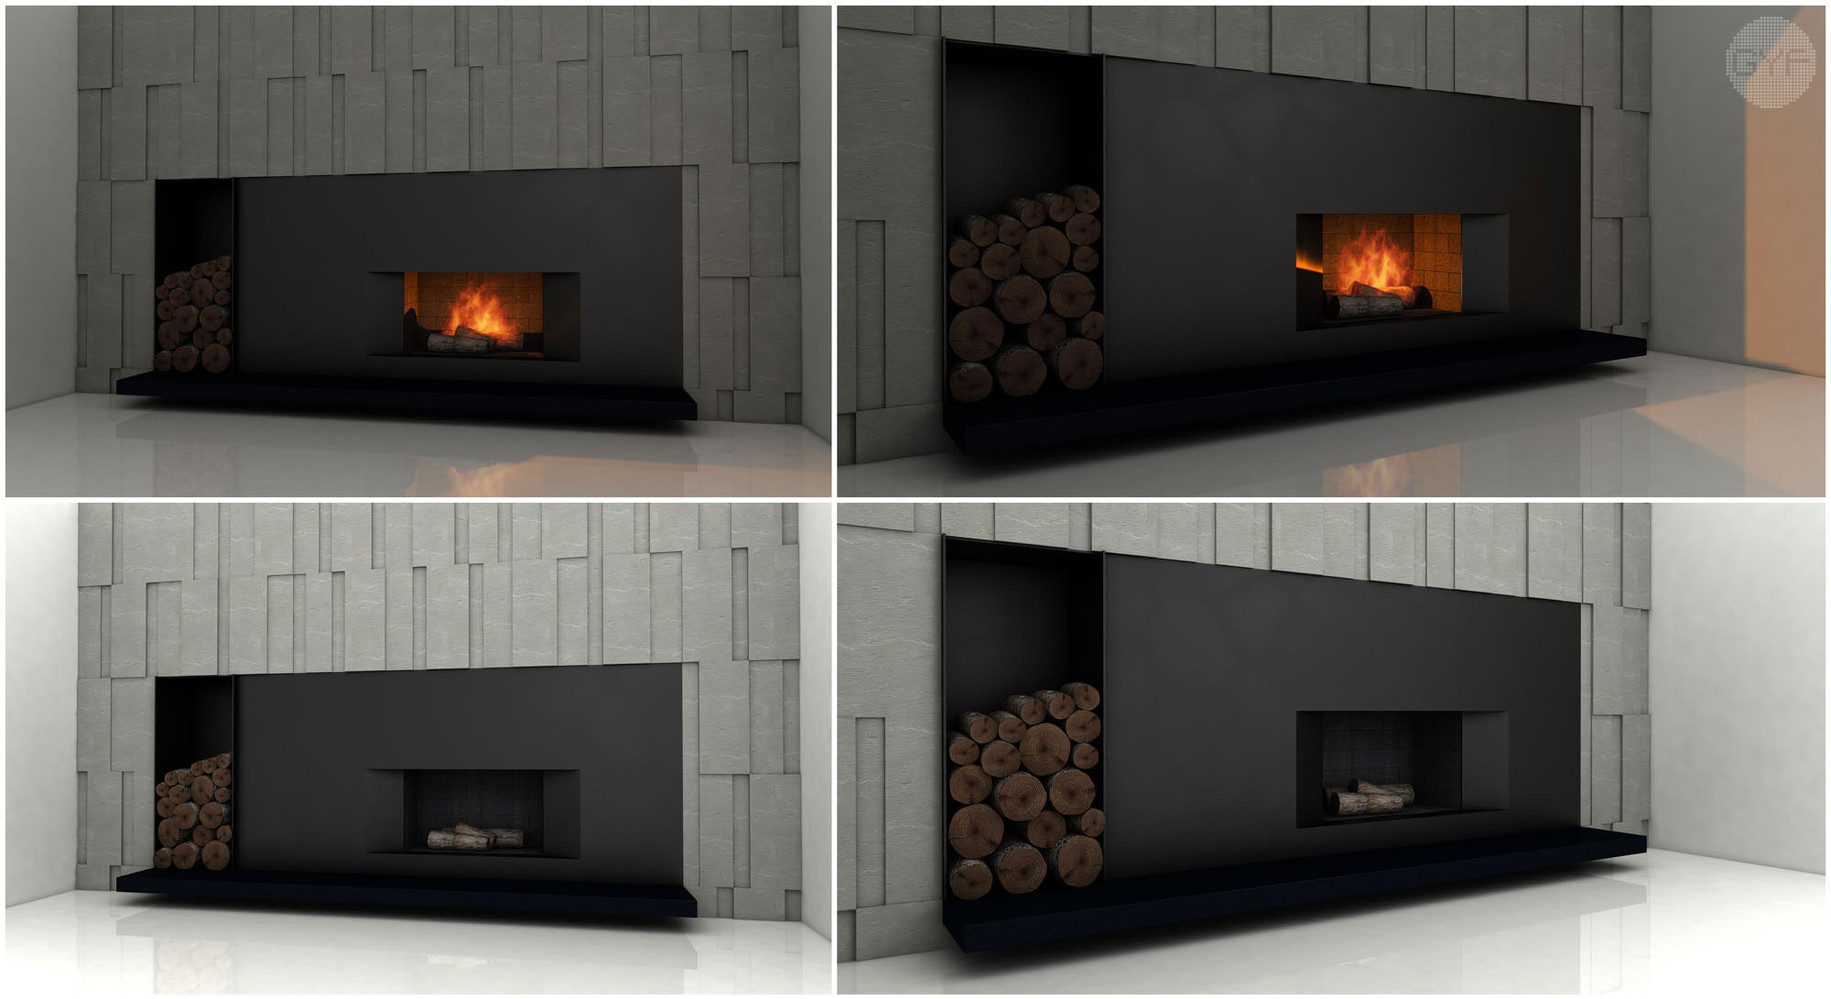 Fireplace in a single family house